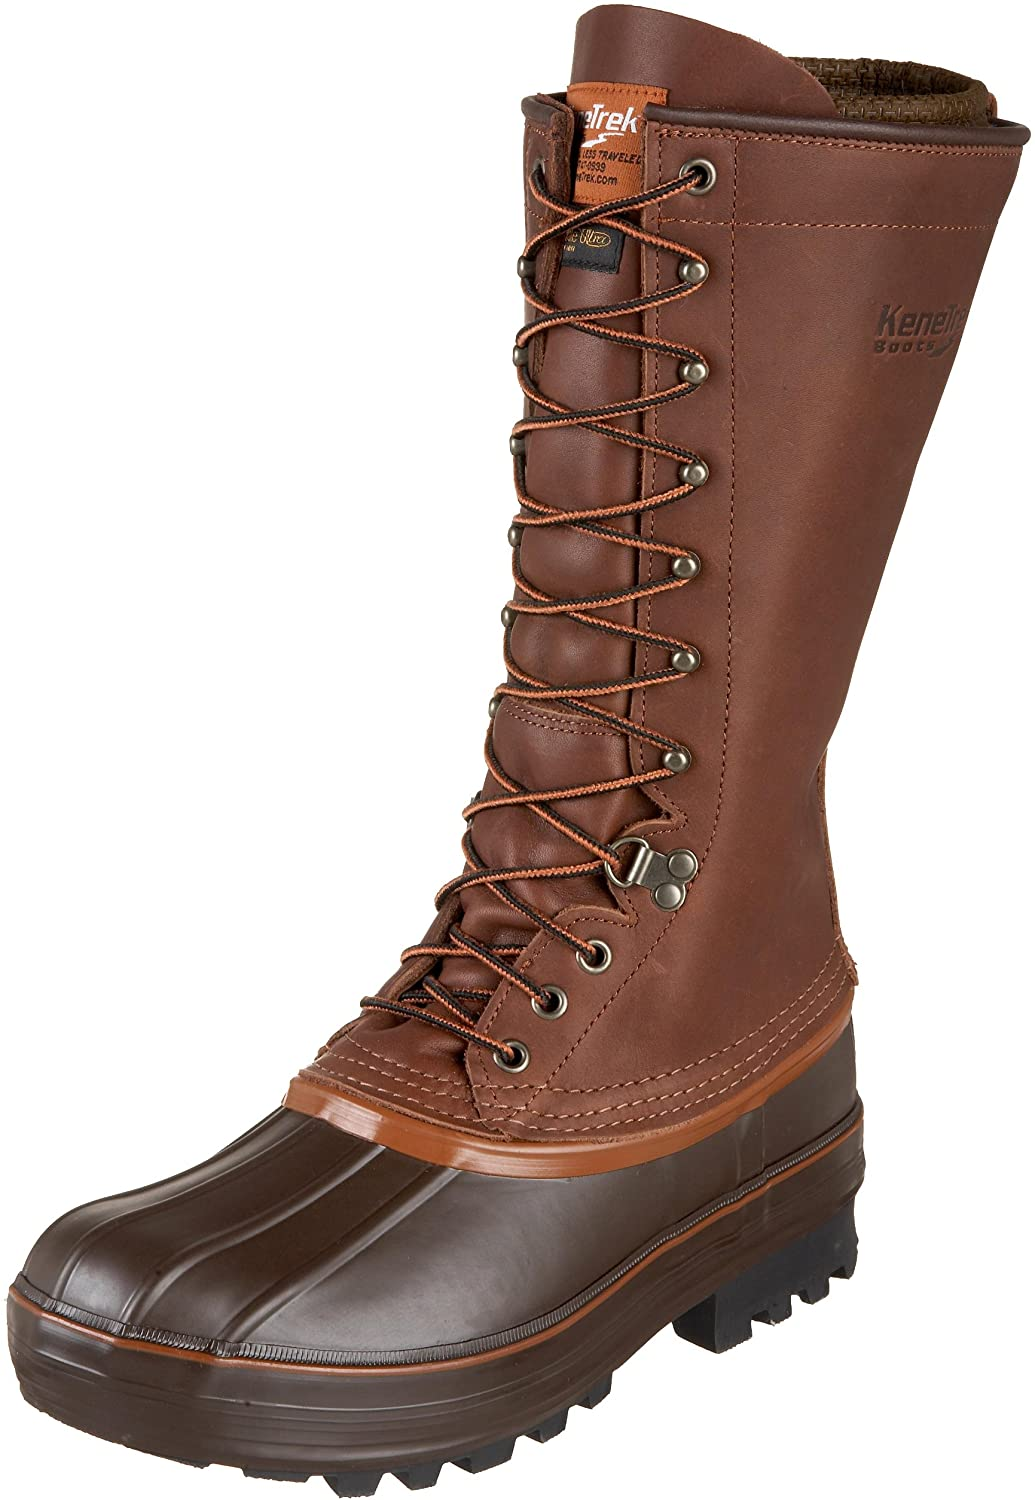 Kenetrek Unisex 13 Inch Grizzly Insulated Boot